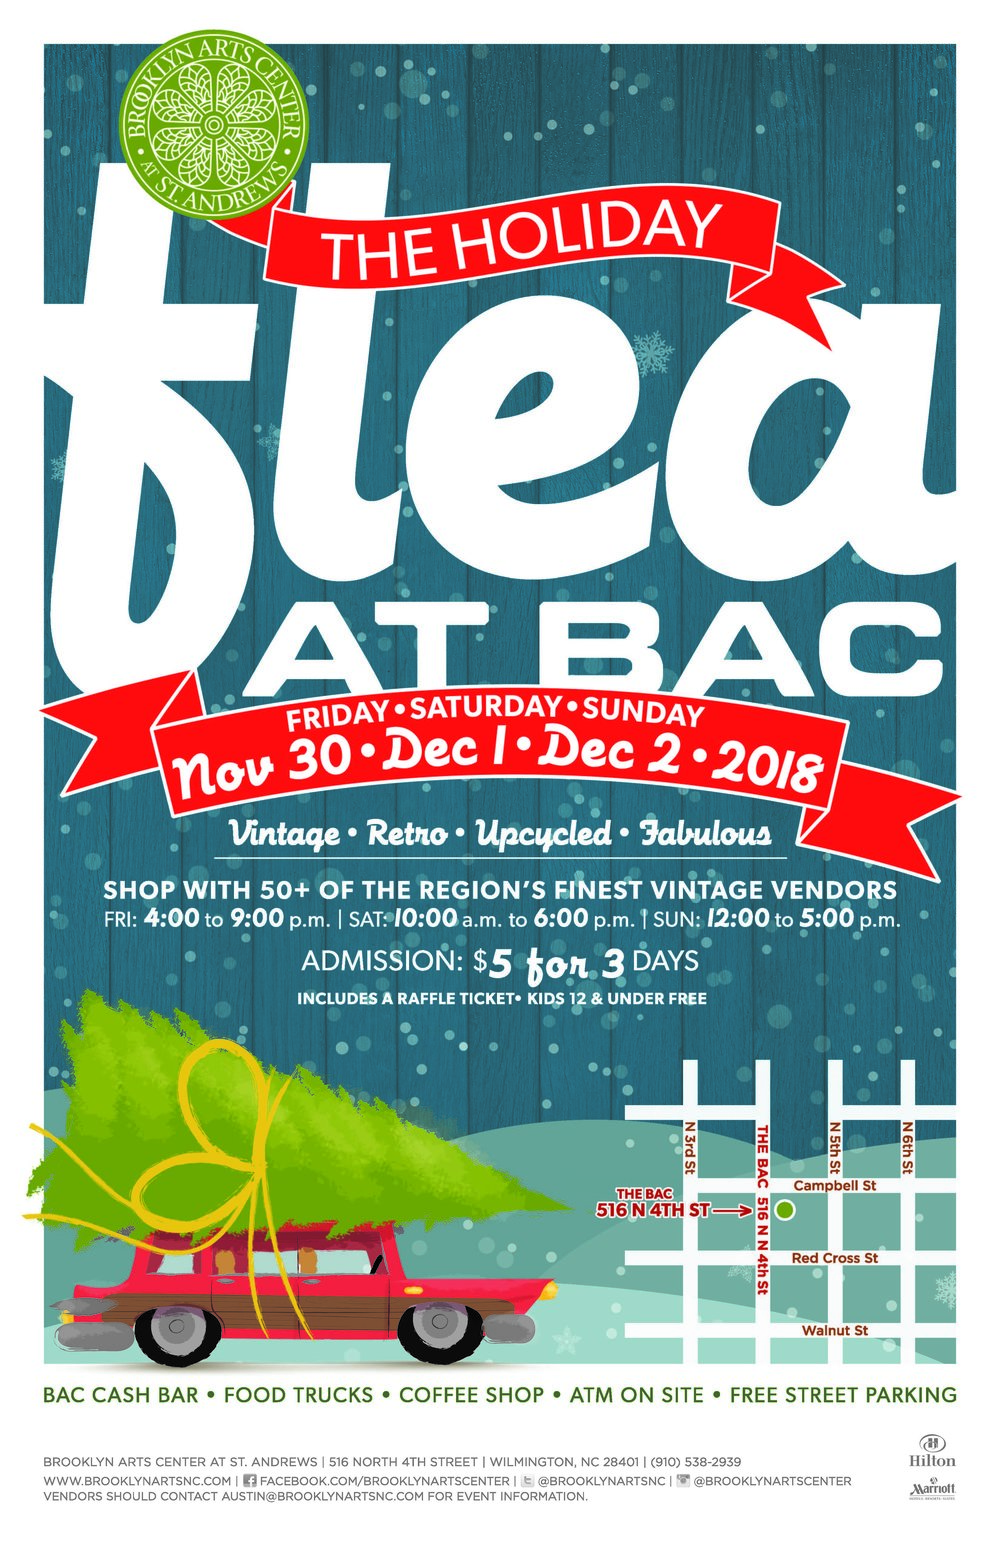 BAC_2062-holiday flea 2018-poster_r2.jpg